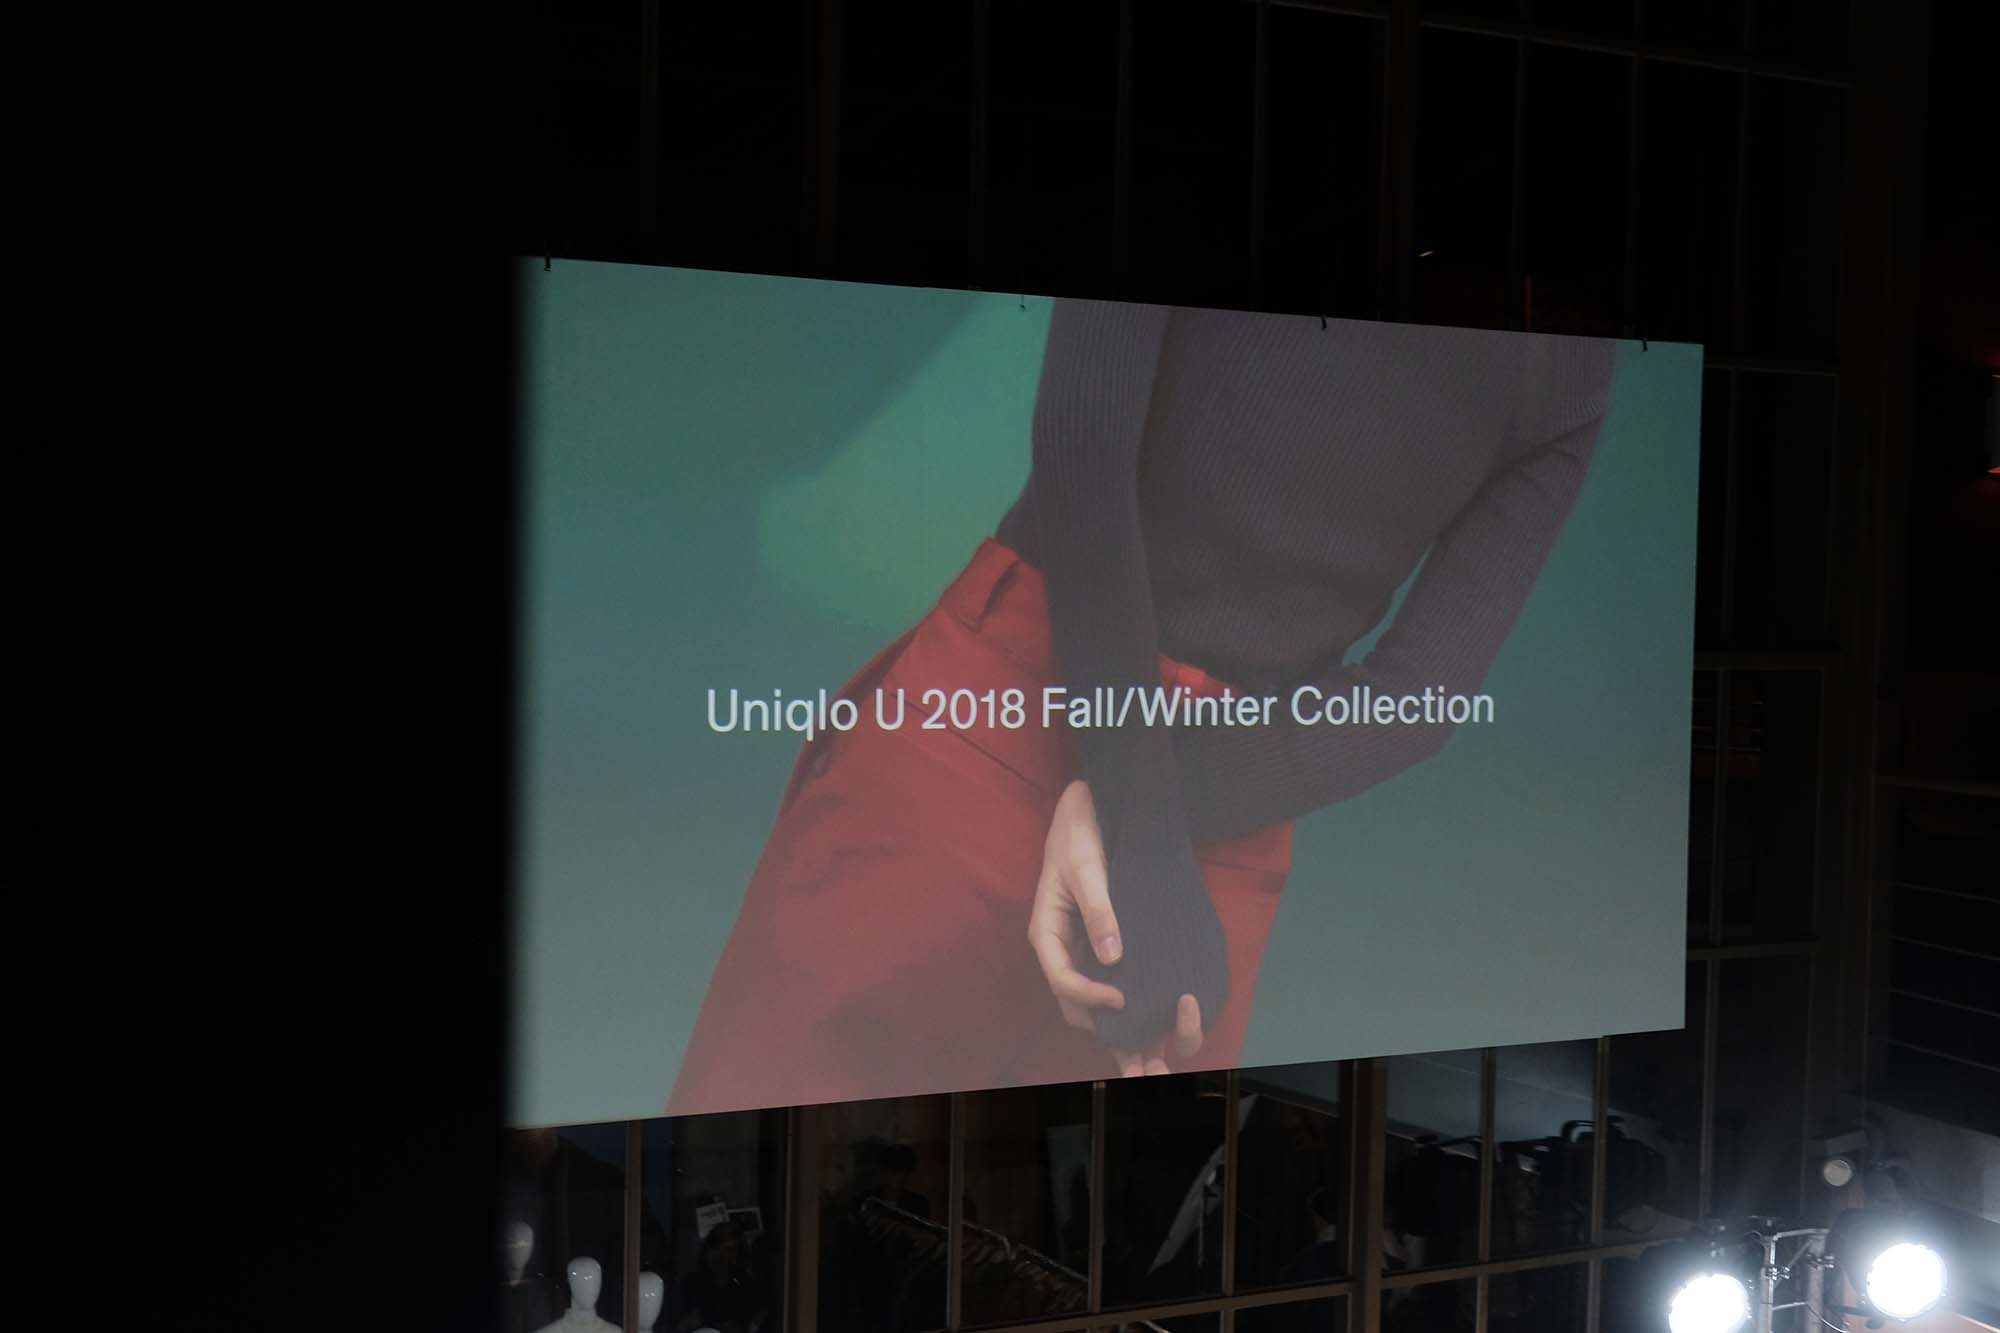 uniqlo-u-2018-aw-collection-preview-09